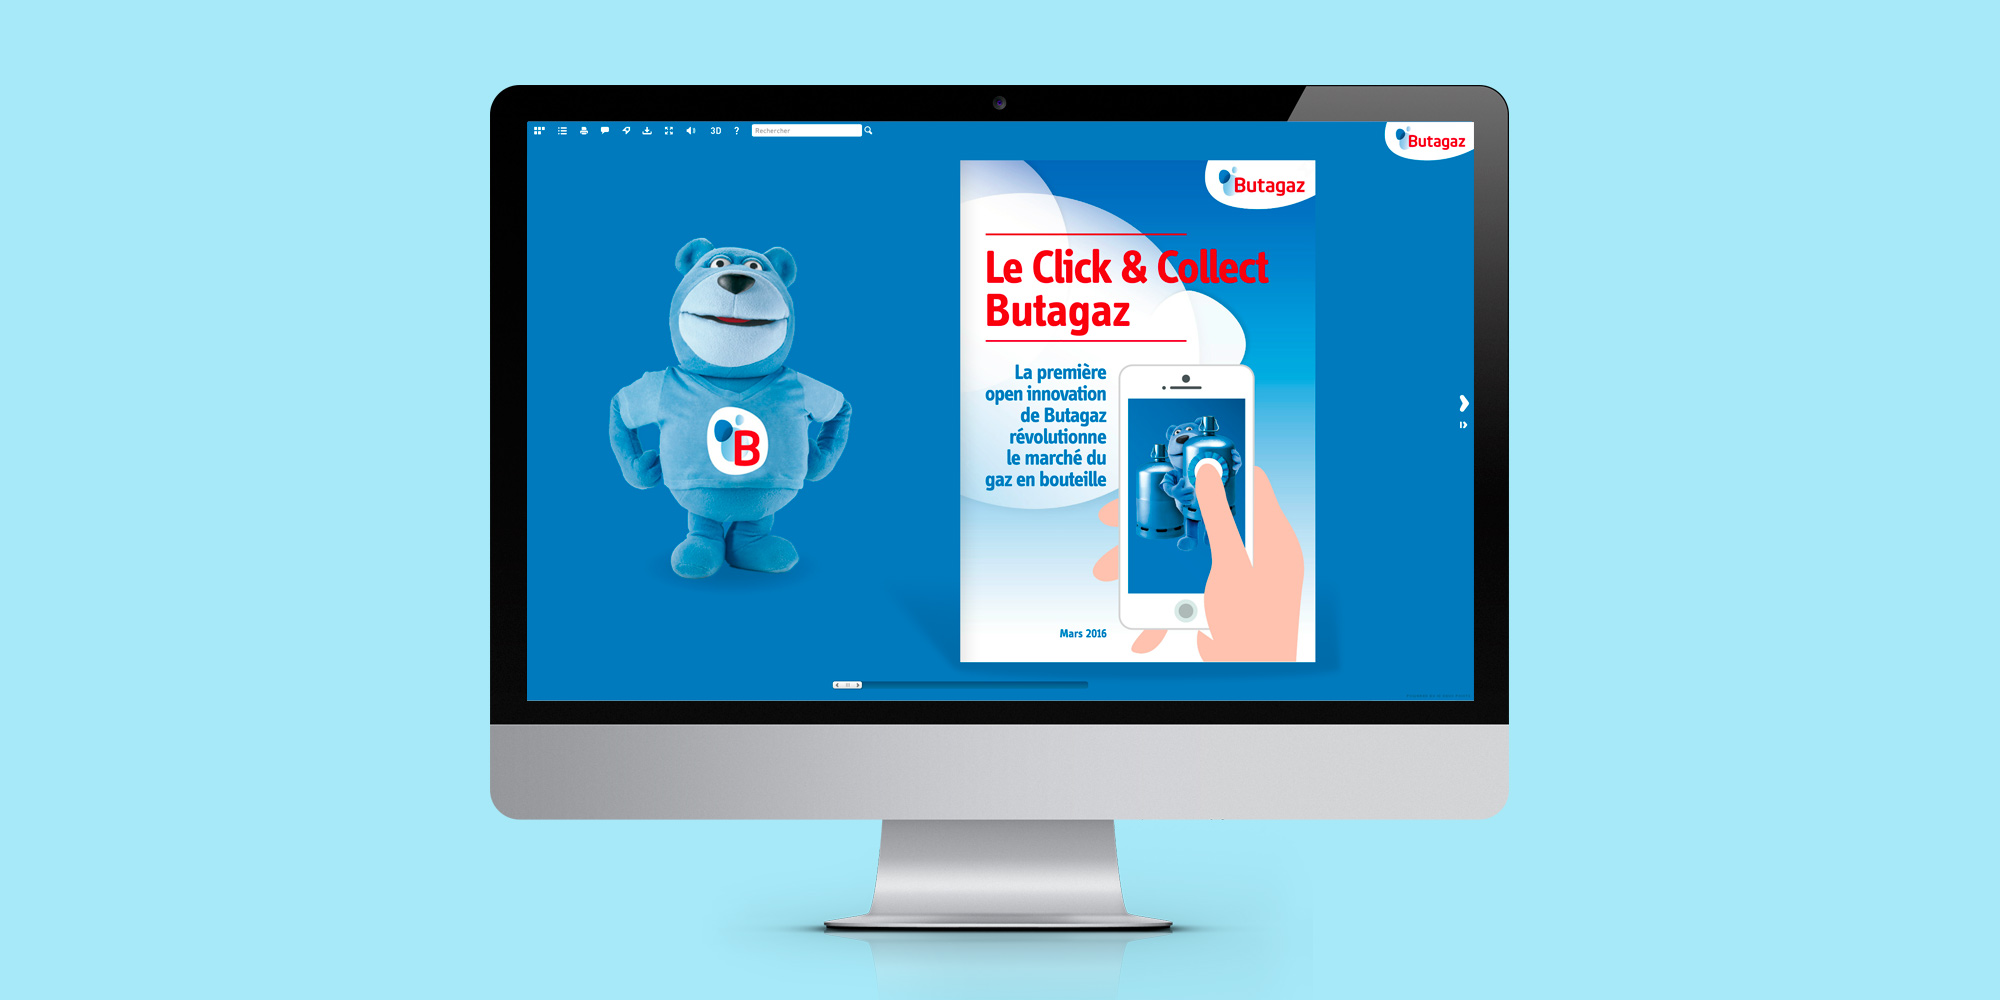 Butagaz - Click & Collect - dossier de presse digital - home - IDDP